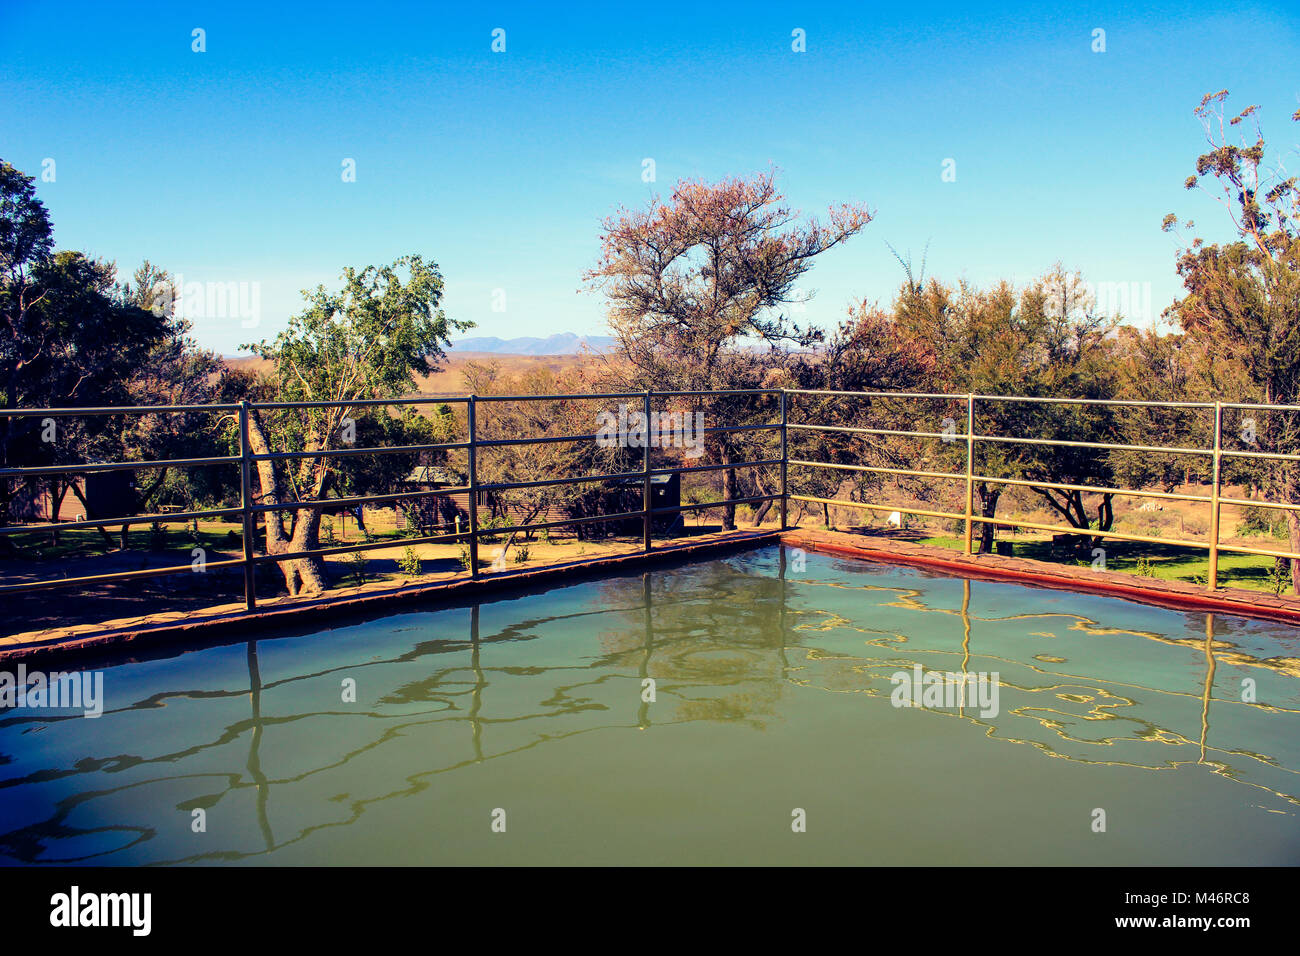 A warm water pool filled from the local warm water springs at the Warmwaterbergspa campsite in the Klein Karoo, - Stock Image